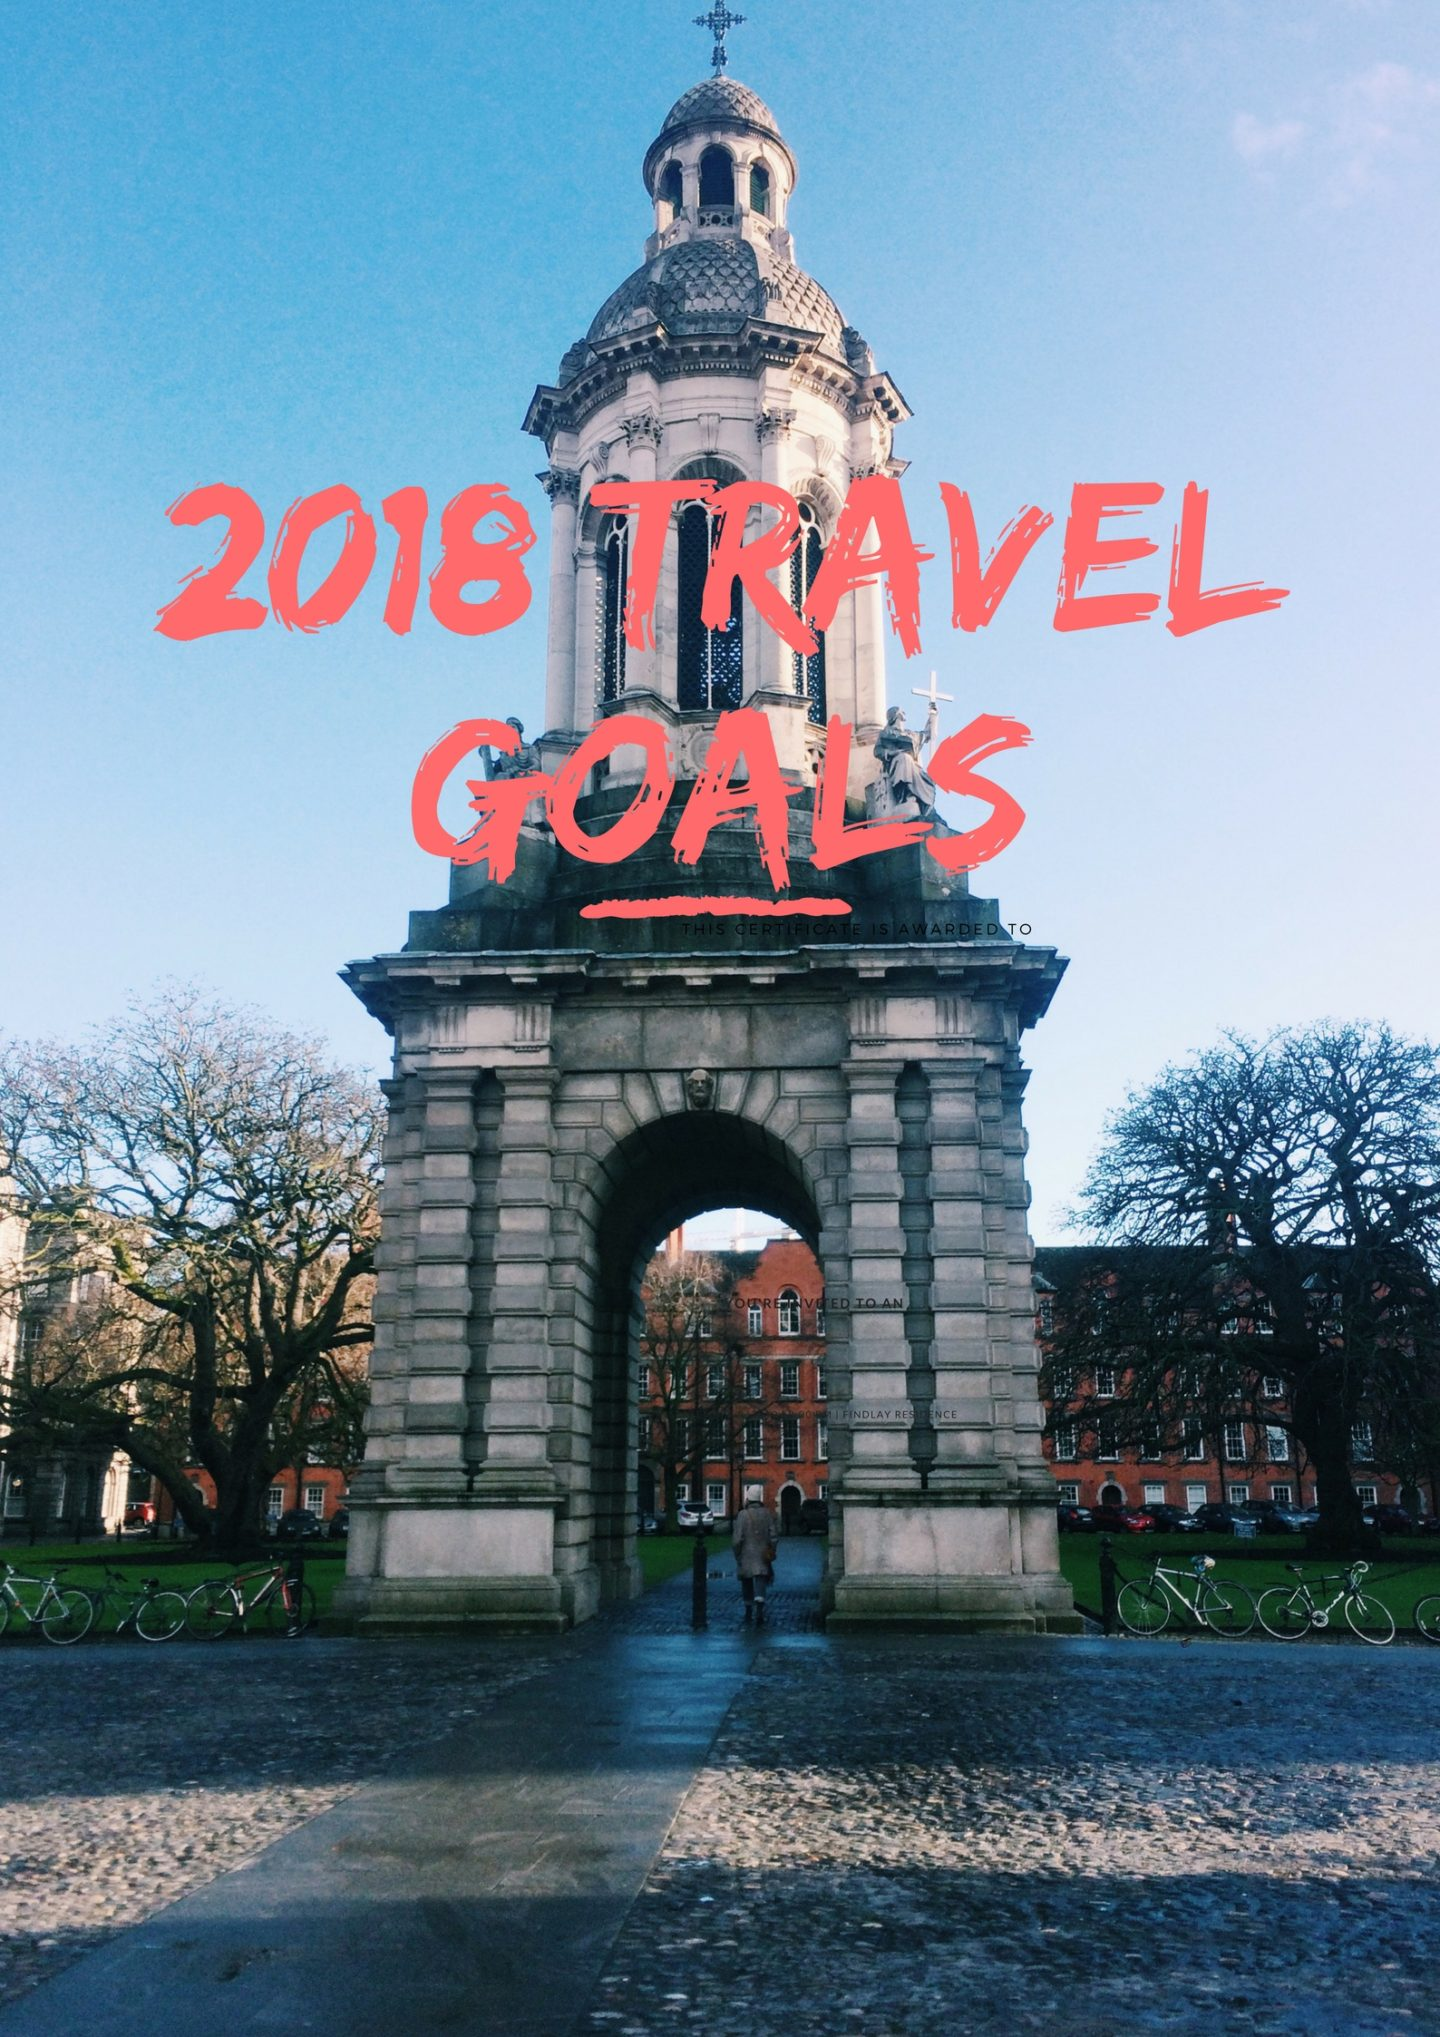 2018 travel goals